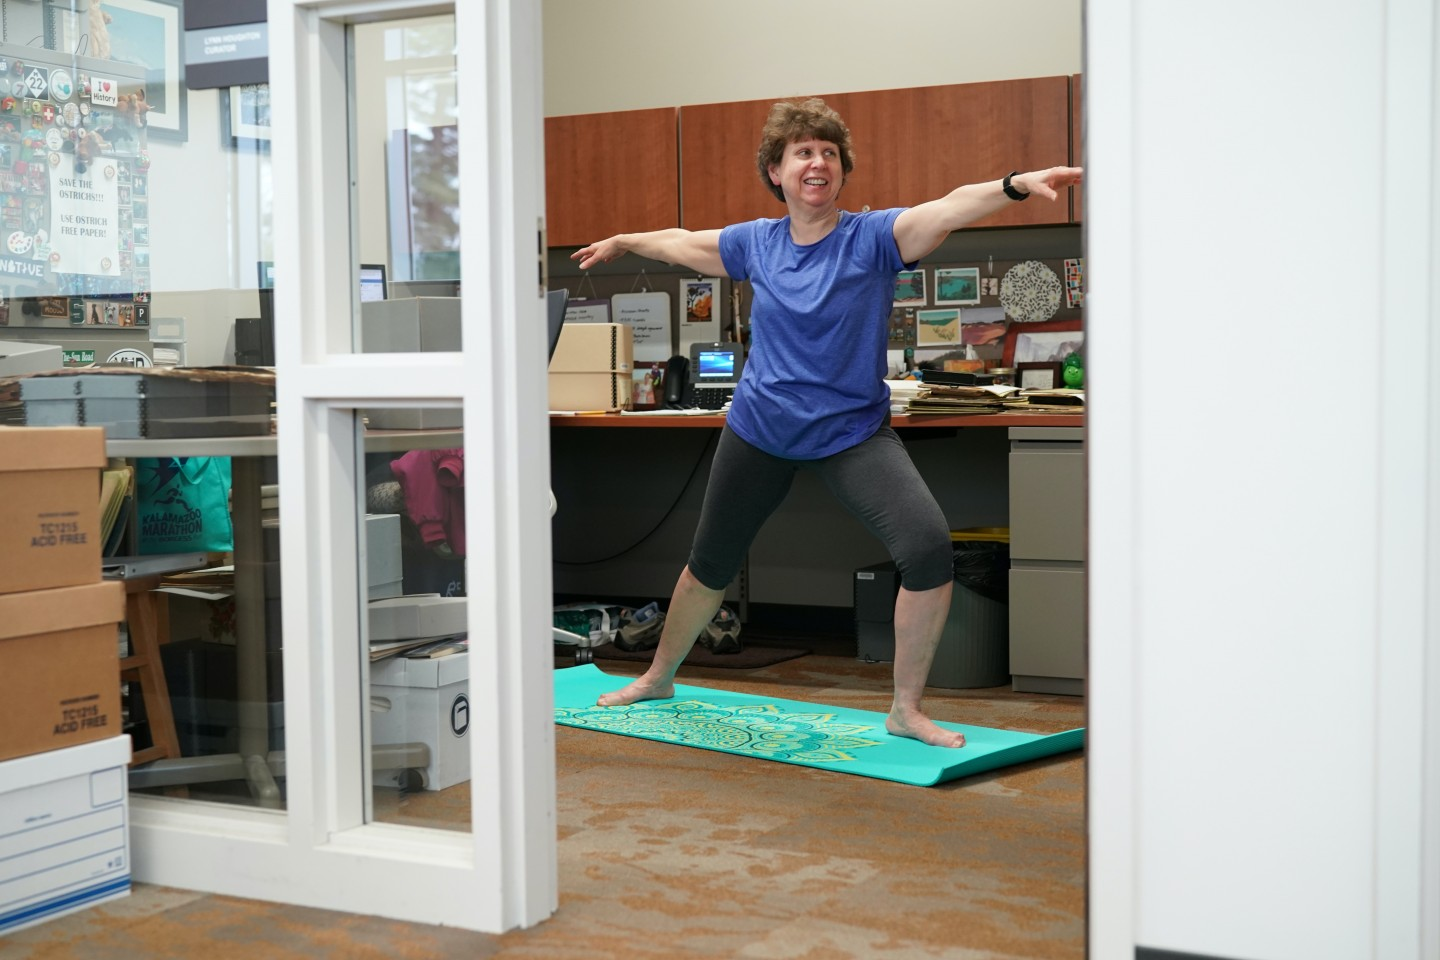 Lynn Houghton, Regional History Collections Curator with WMU University Libraries, does yoga in her office.